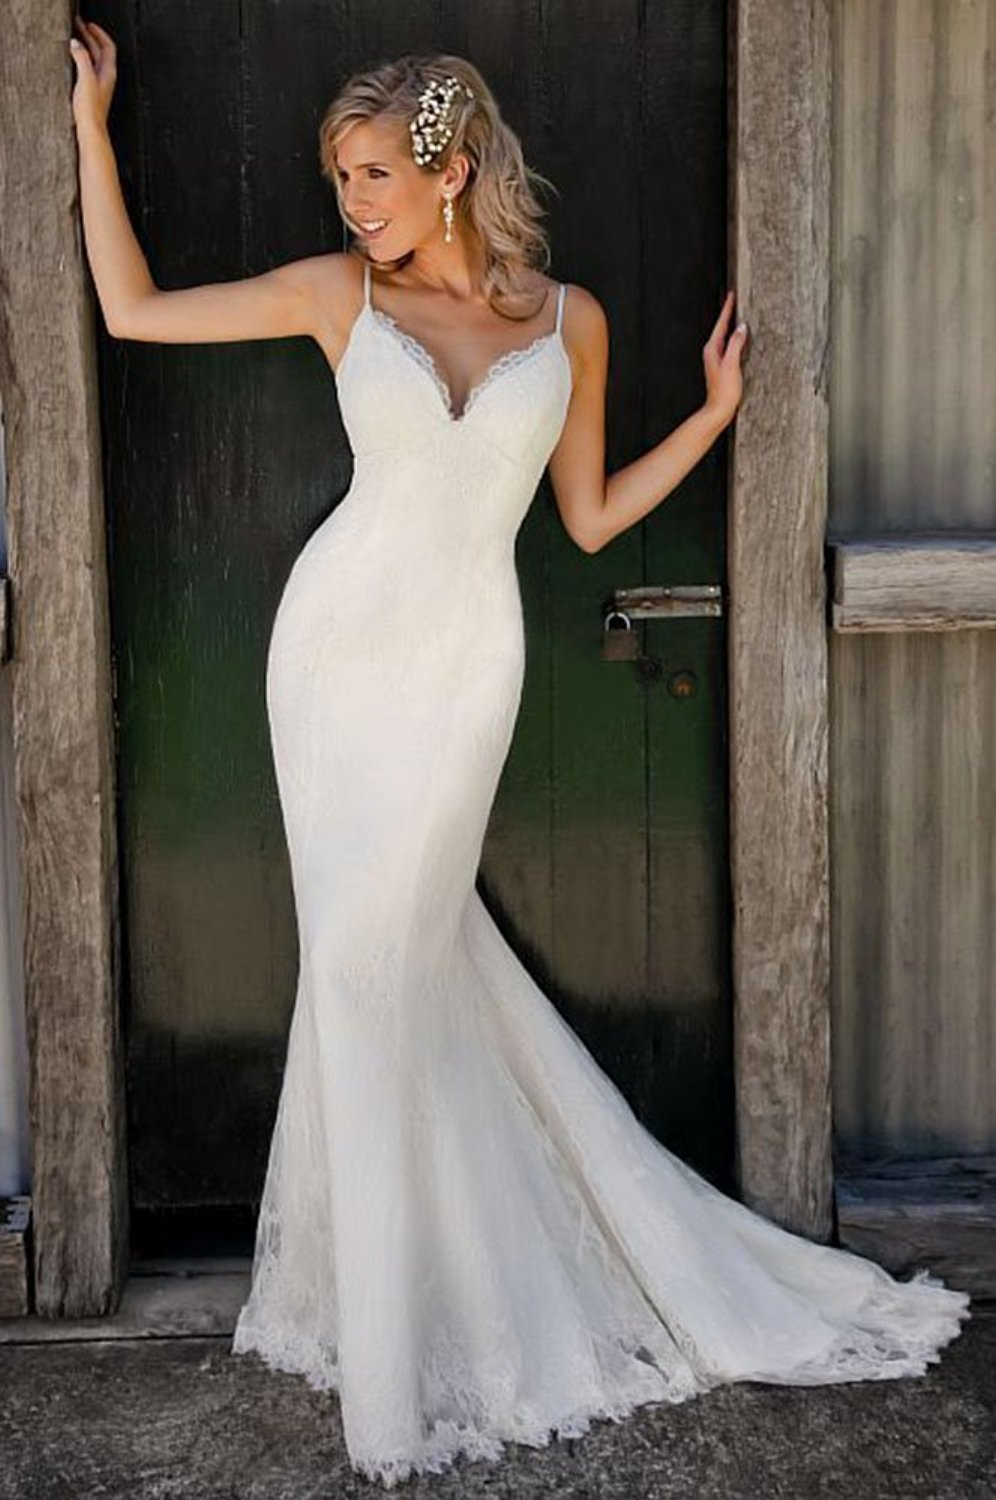 mermaid wedding dress spaghetti straps white mermaid wedding dresses Spaghetti Straps V Neck Lace Mermaid Wedding Dress